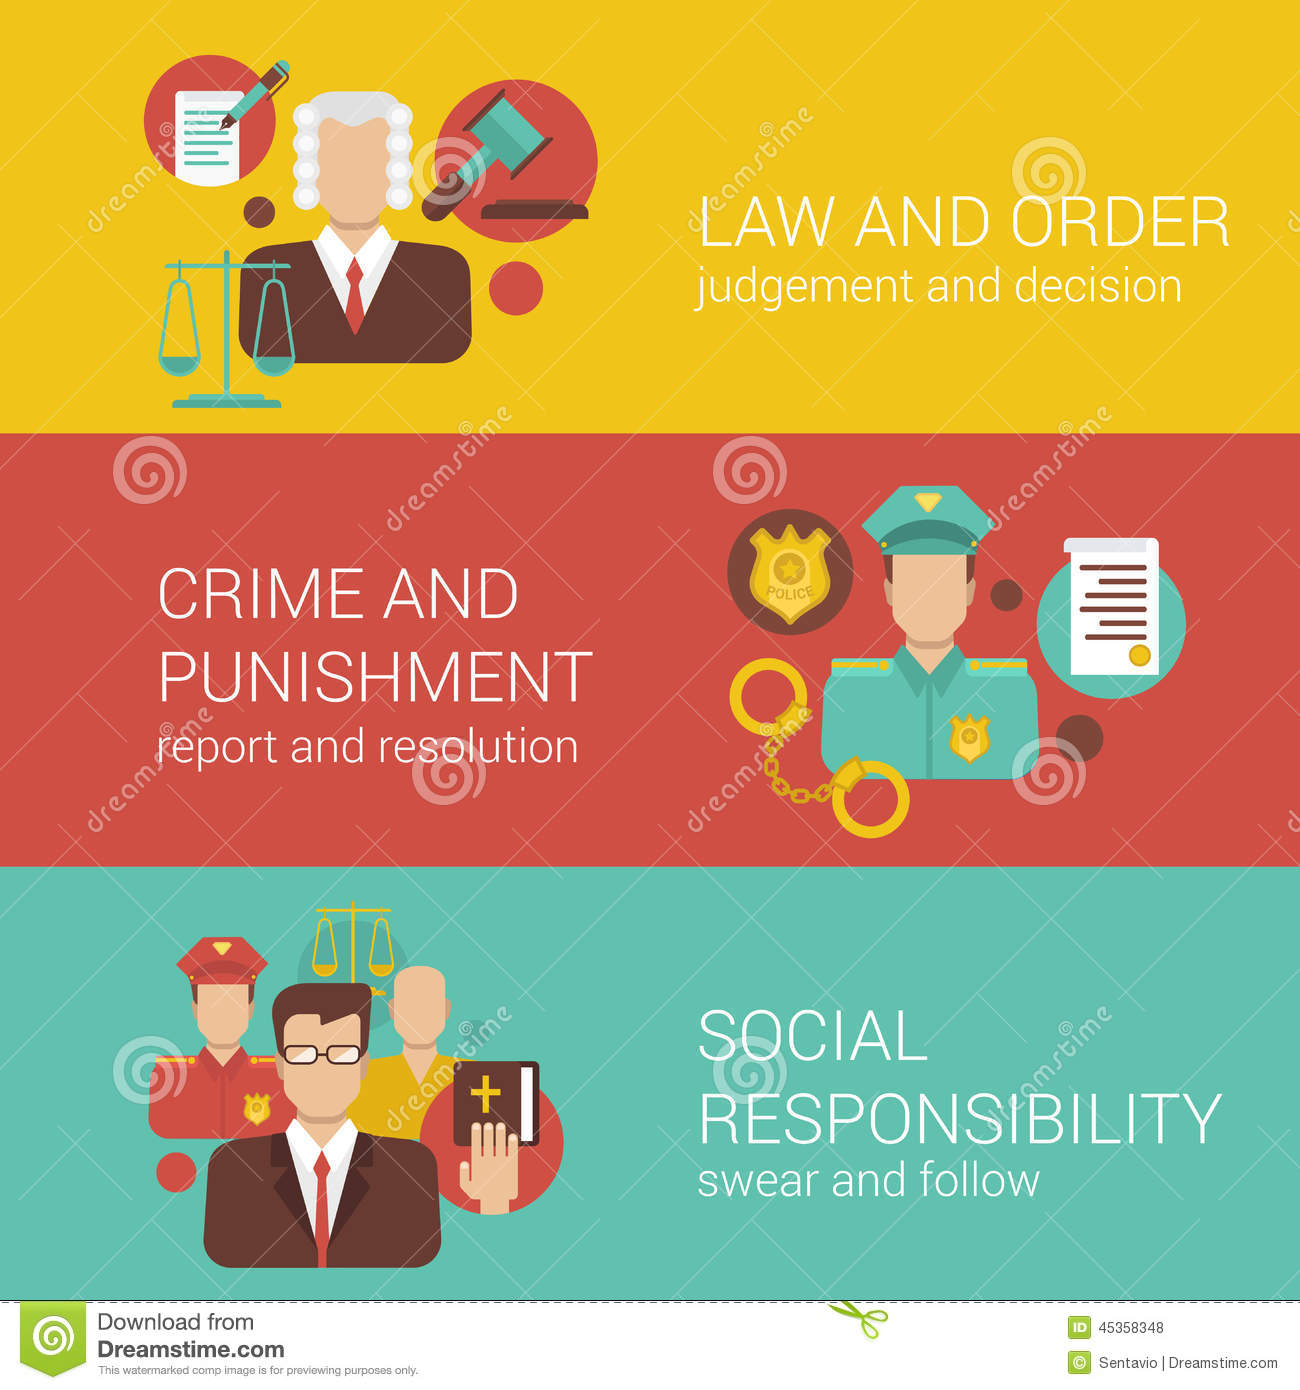 how to apply for a court order to remove websites